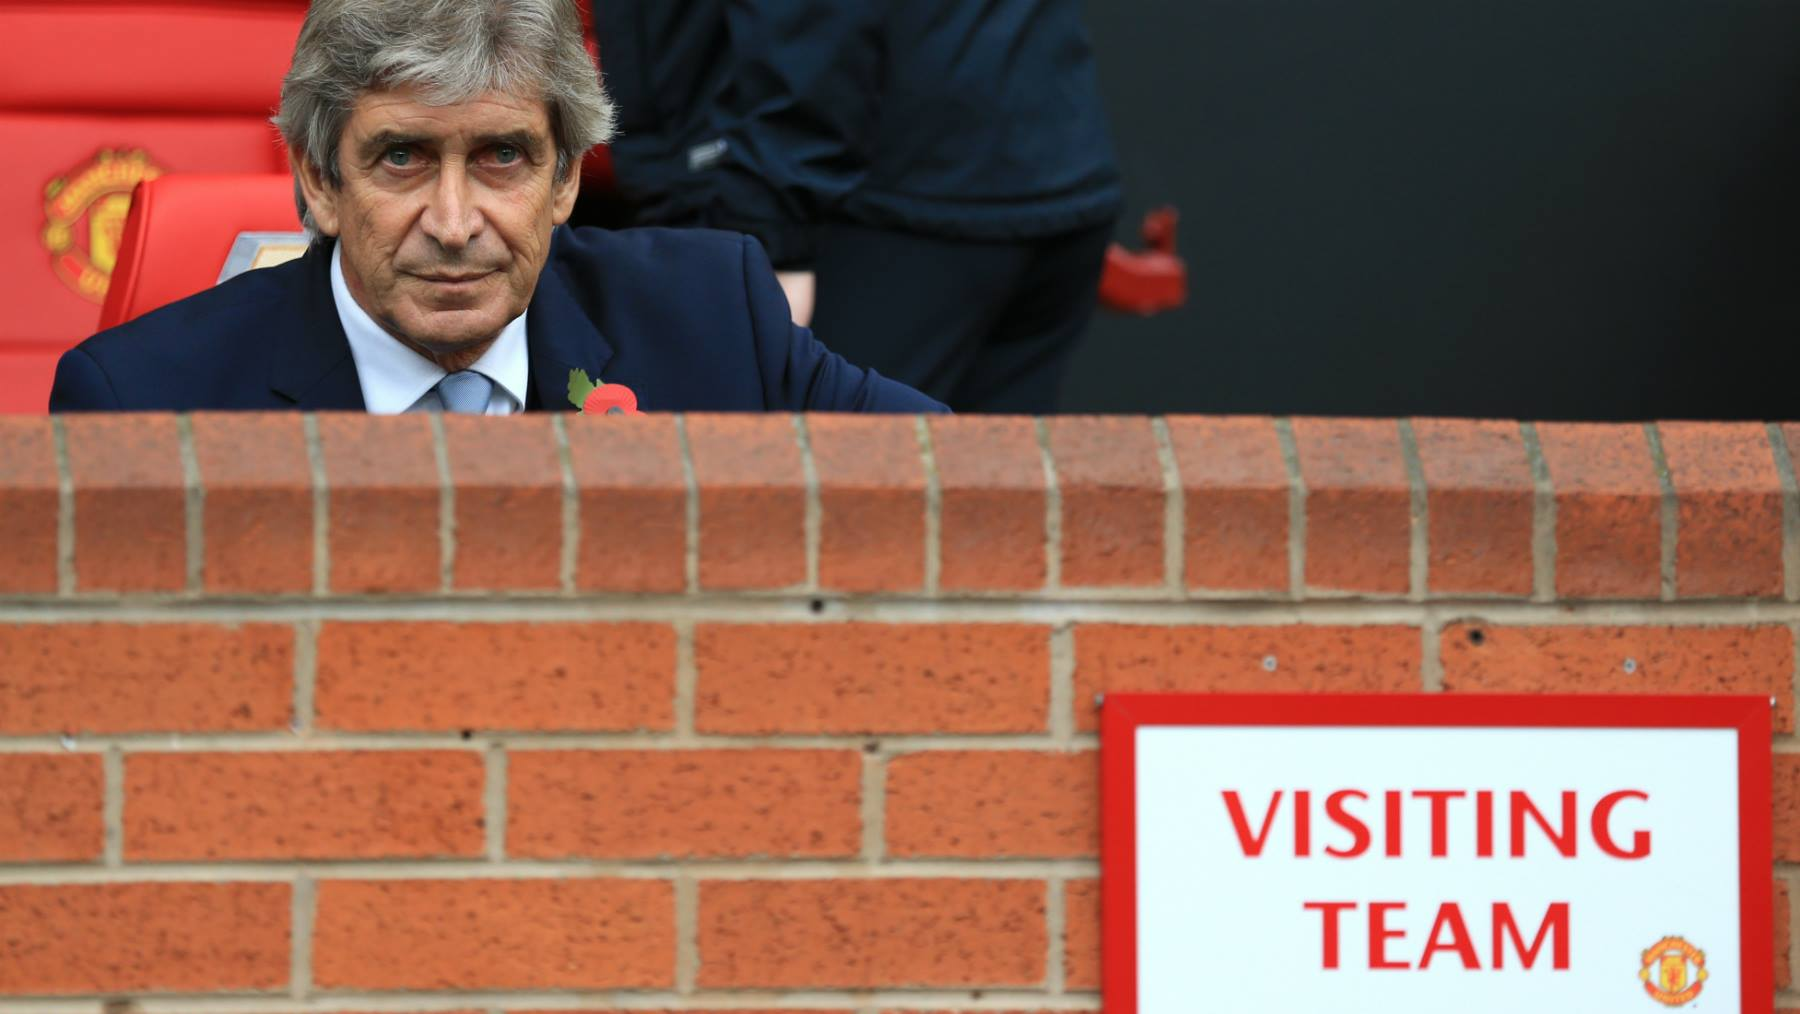 Sitting firm - Manuel Pellegrini's tactics helped ensure City stayed top of the Premier League. Courtesy@MCFC